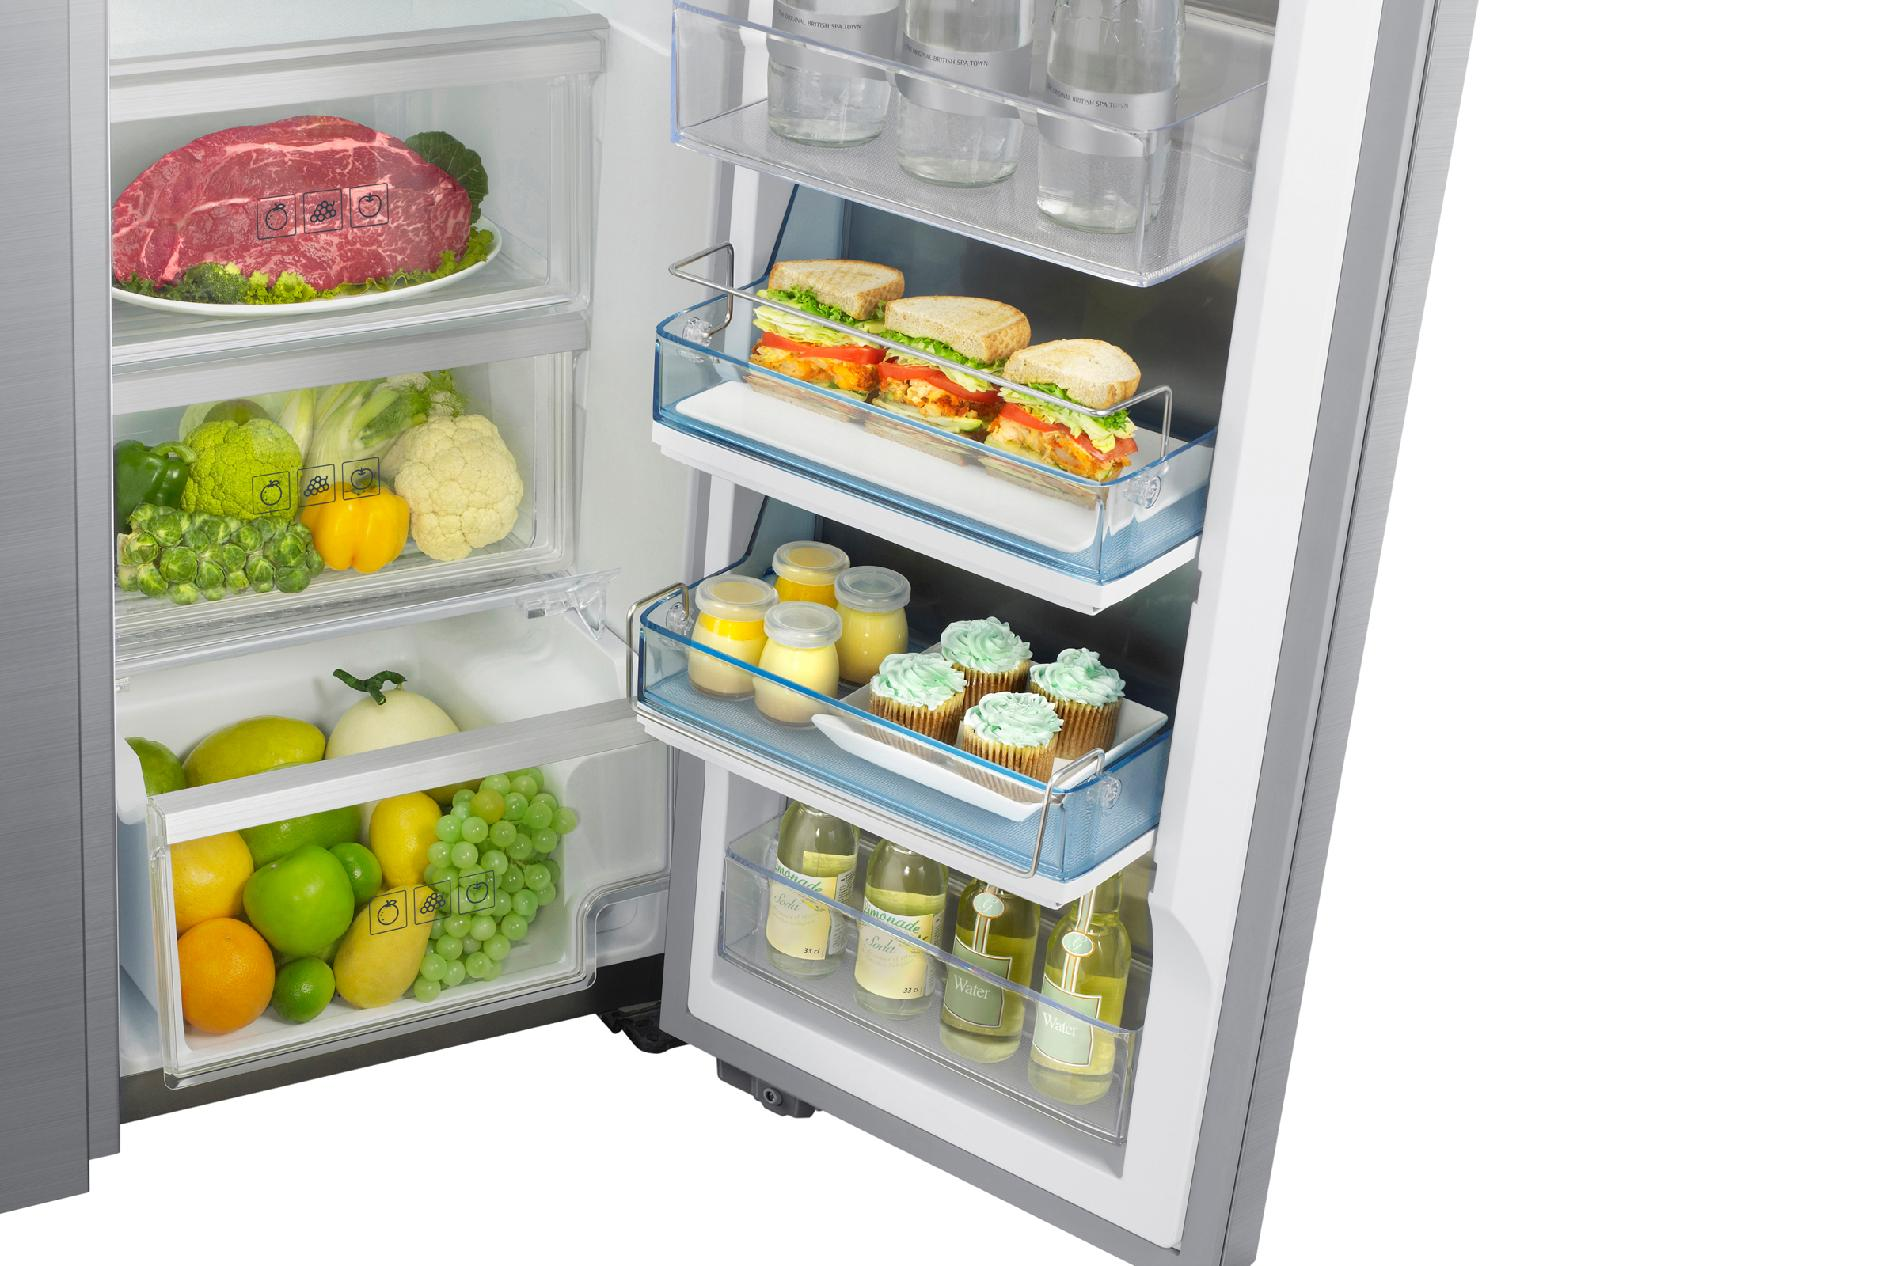 Samsung 22 cu. ft. Counter Depth Side-by-Side Refrigerator - Stainless Steel